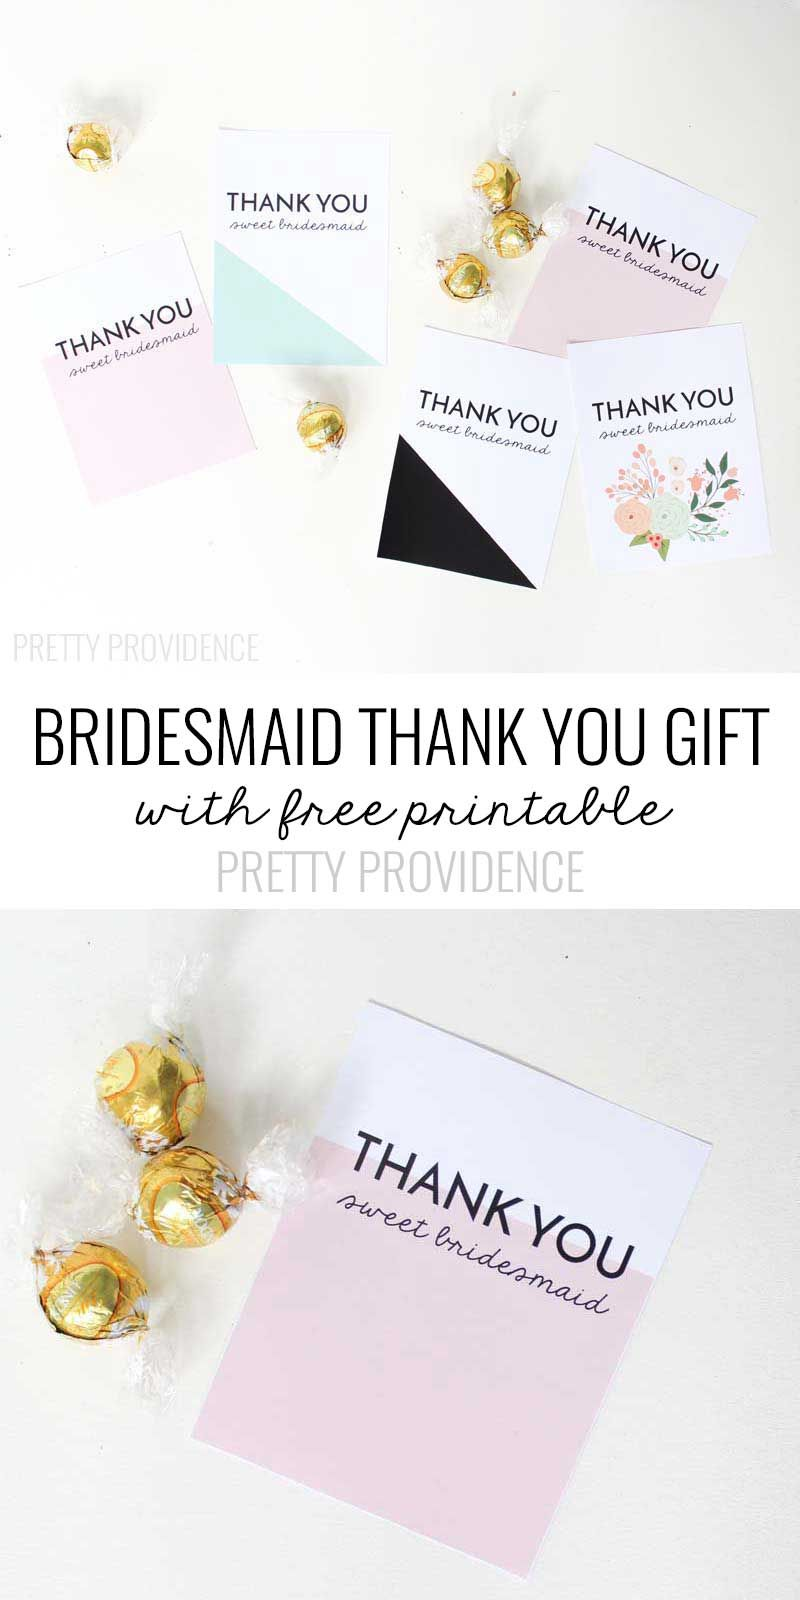 Bridesmaid Thank You Gift Printable  Free Printable Gift And